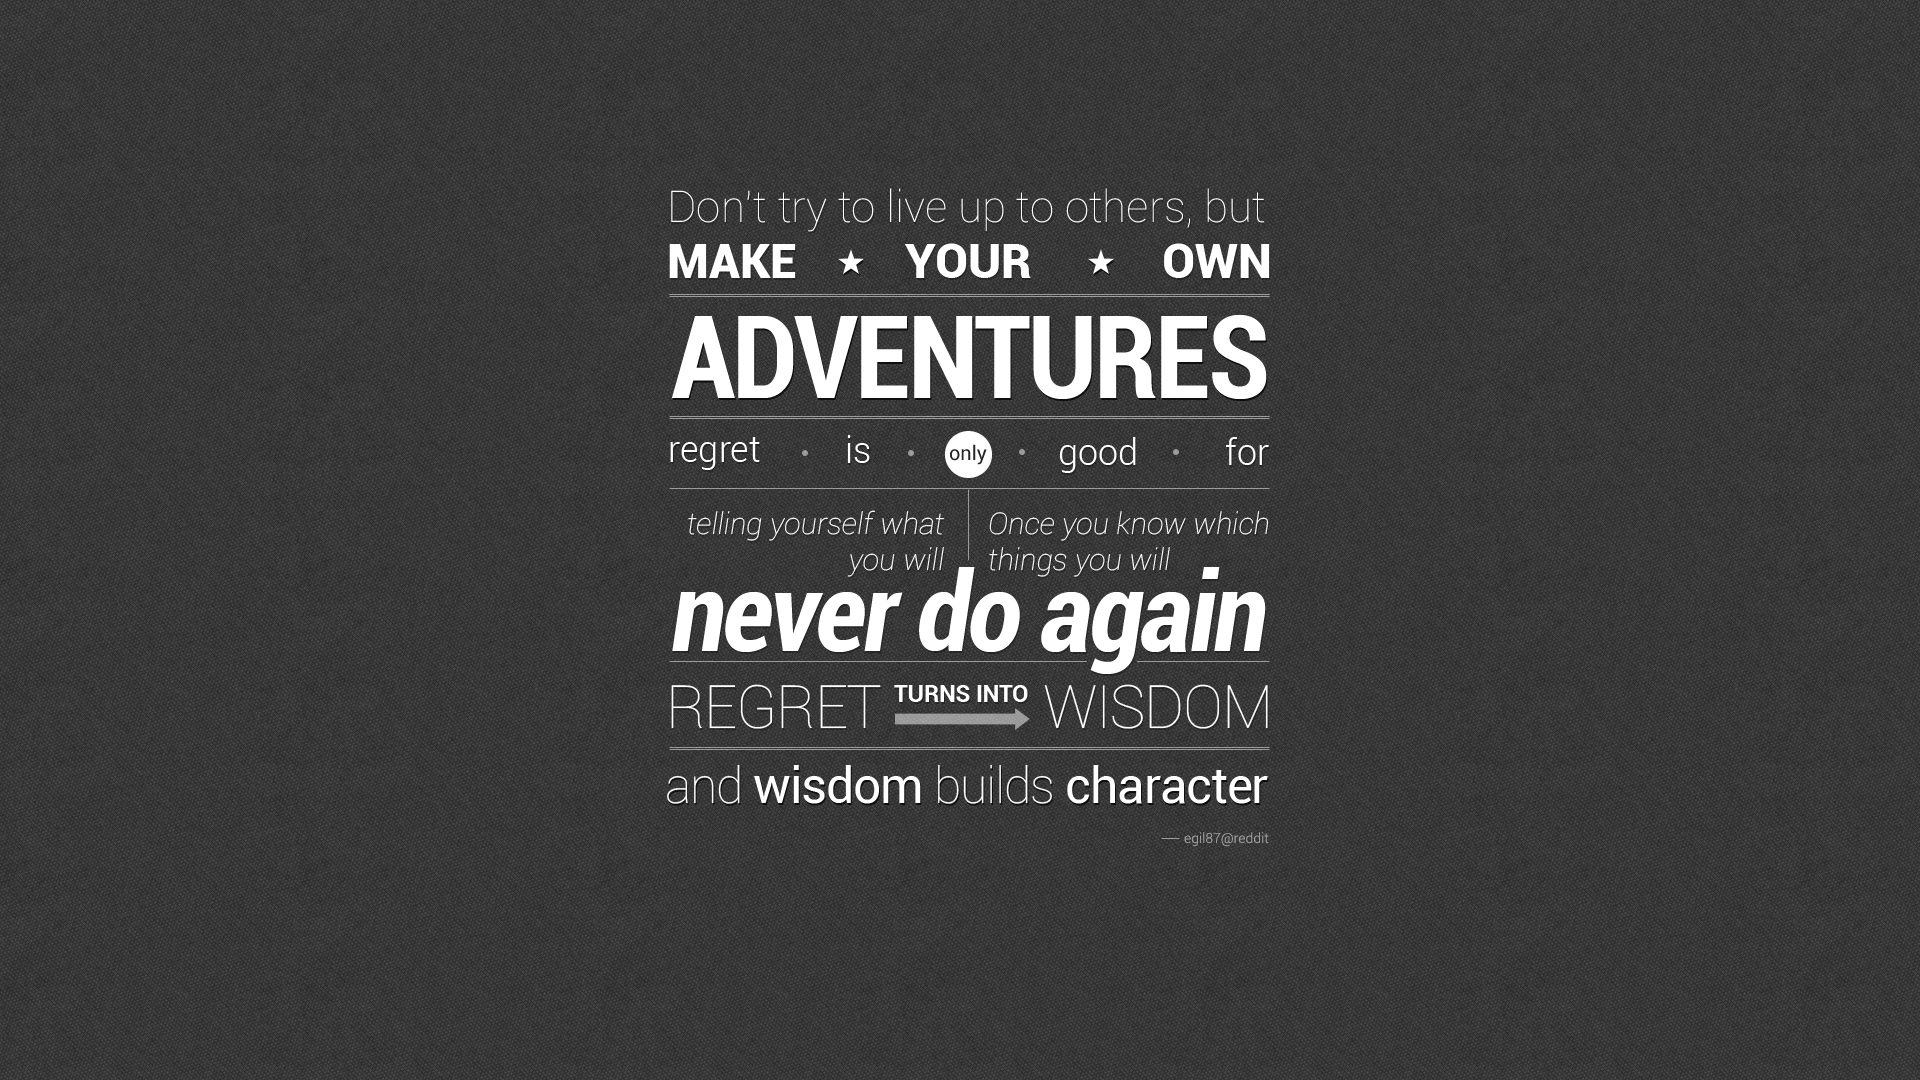 Good Quotes 115 Best Motivational Wallpaper Examples With Inspiring Quotes